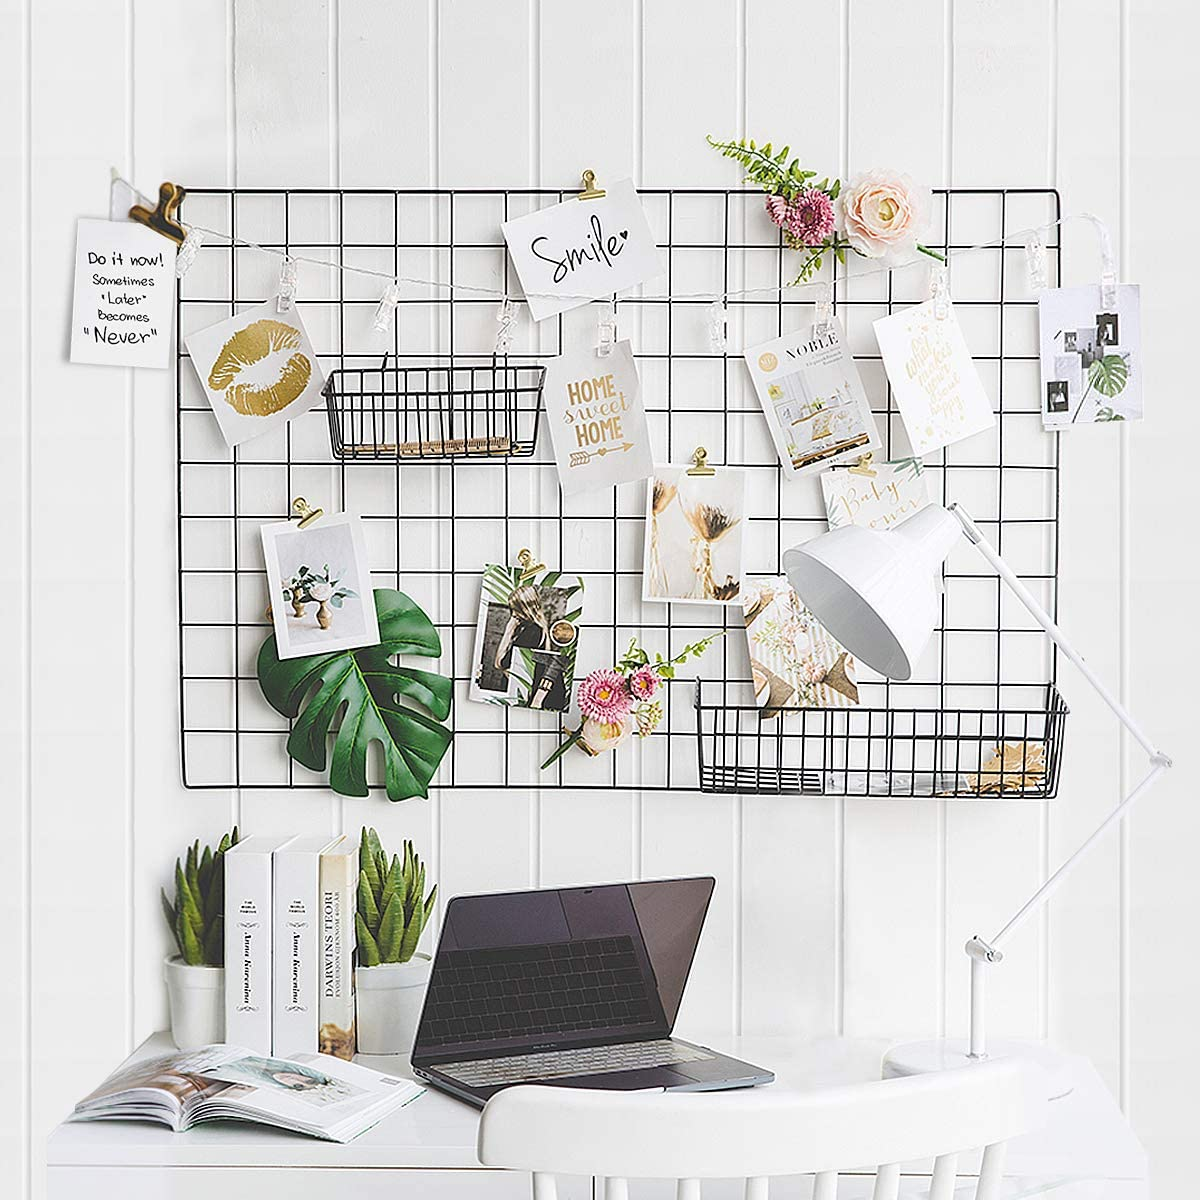 GBYAN Wall Grid 2 Pack Wire Photo Grid Panels Metal Picture Rack Wall Organizer with Decoration Light and Clips for Memo, Photo Display, 25.6x17.7 Each Grid Panel